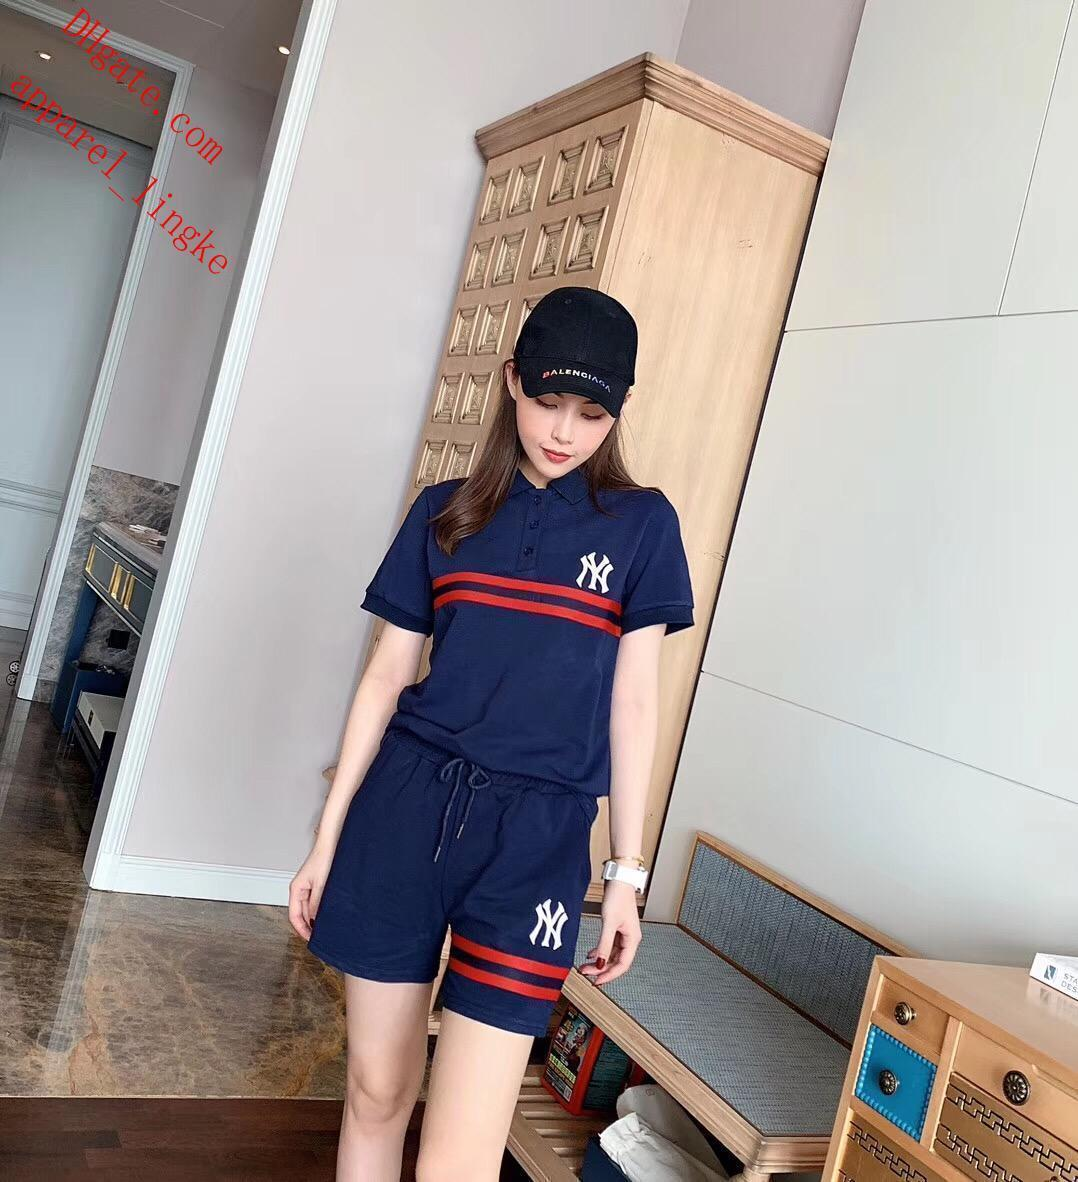 2019 women jogger suit T-shirt 2 piece tshirt short pant sportswear outfits summer clothing women two piece summer outfits